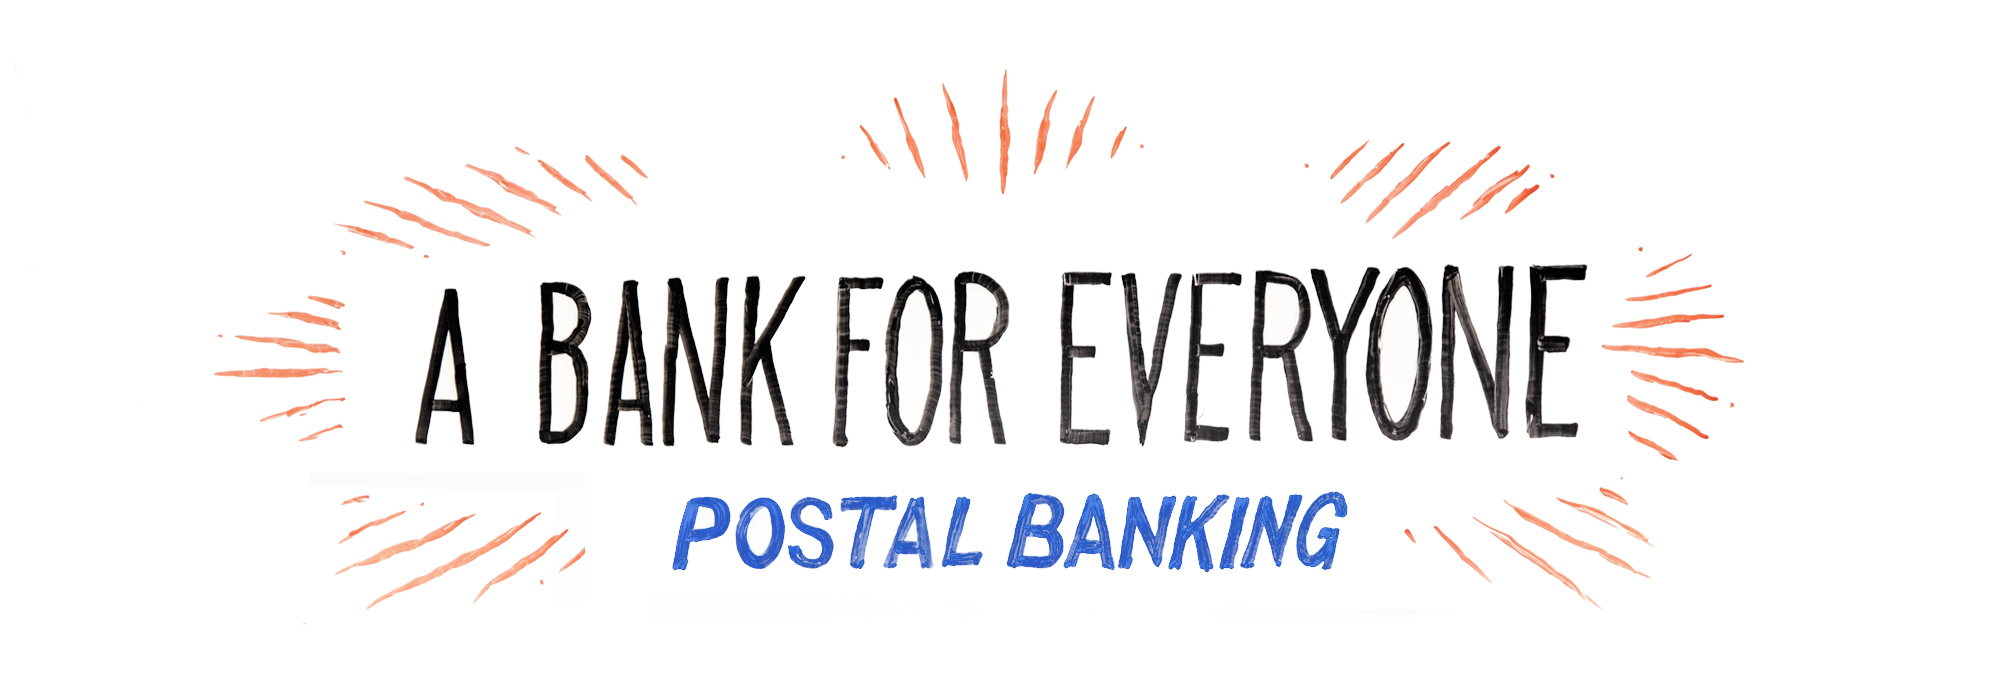 Whiteboard illustration of a starburst with the words A BANK FOR EVERYONE and POSTAL BANKING written in the middle